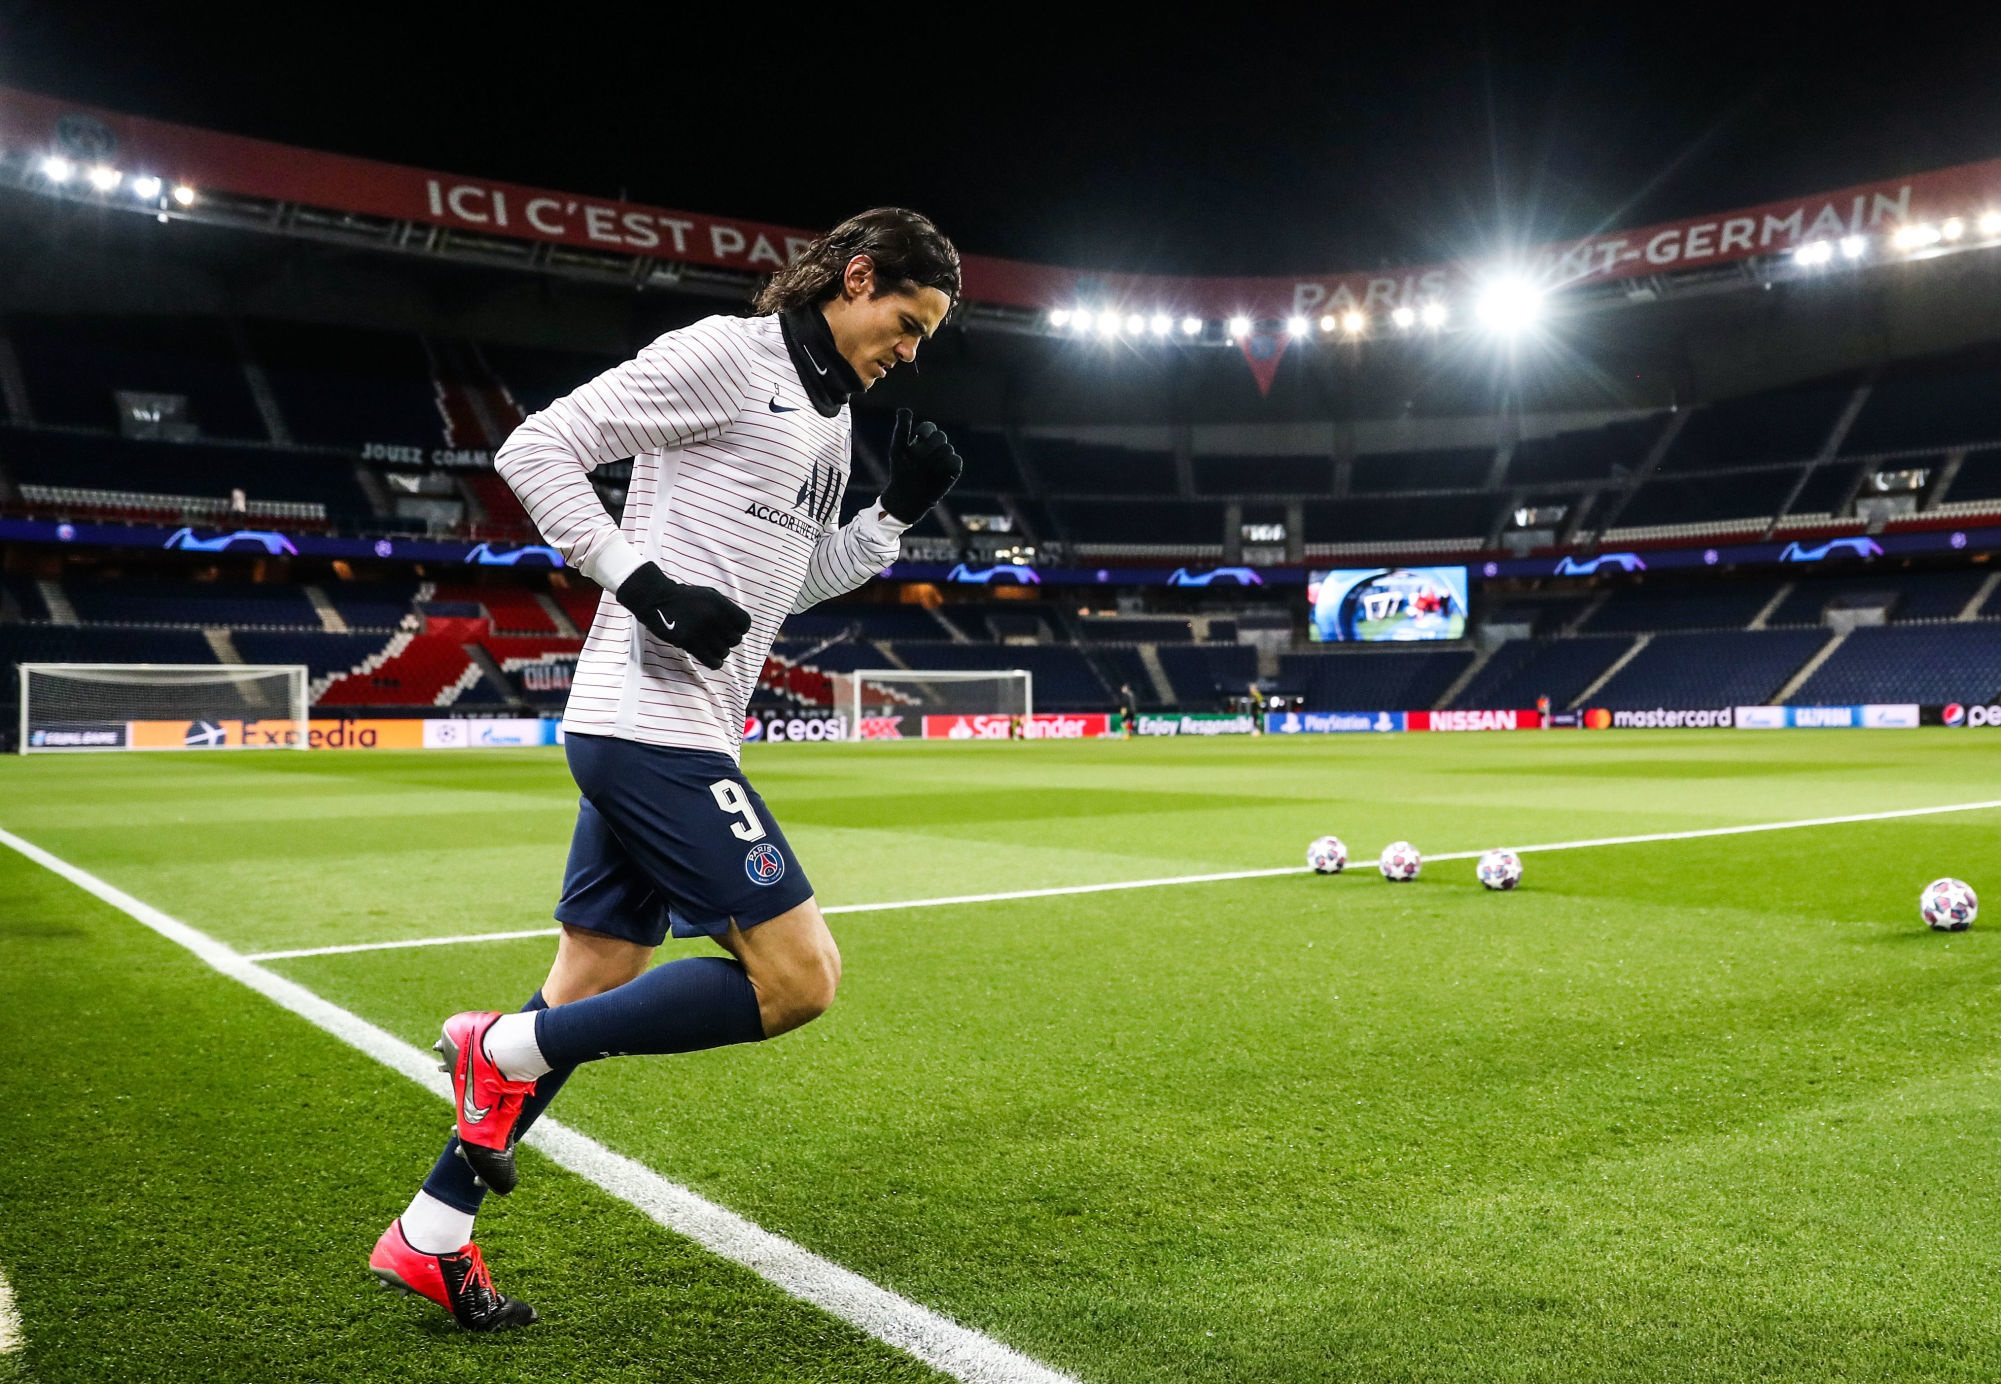 Mercato - L'entourage de Cavani en discussion avec l'Atlético de Madrid, selon Sky Italia